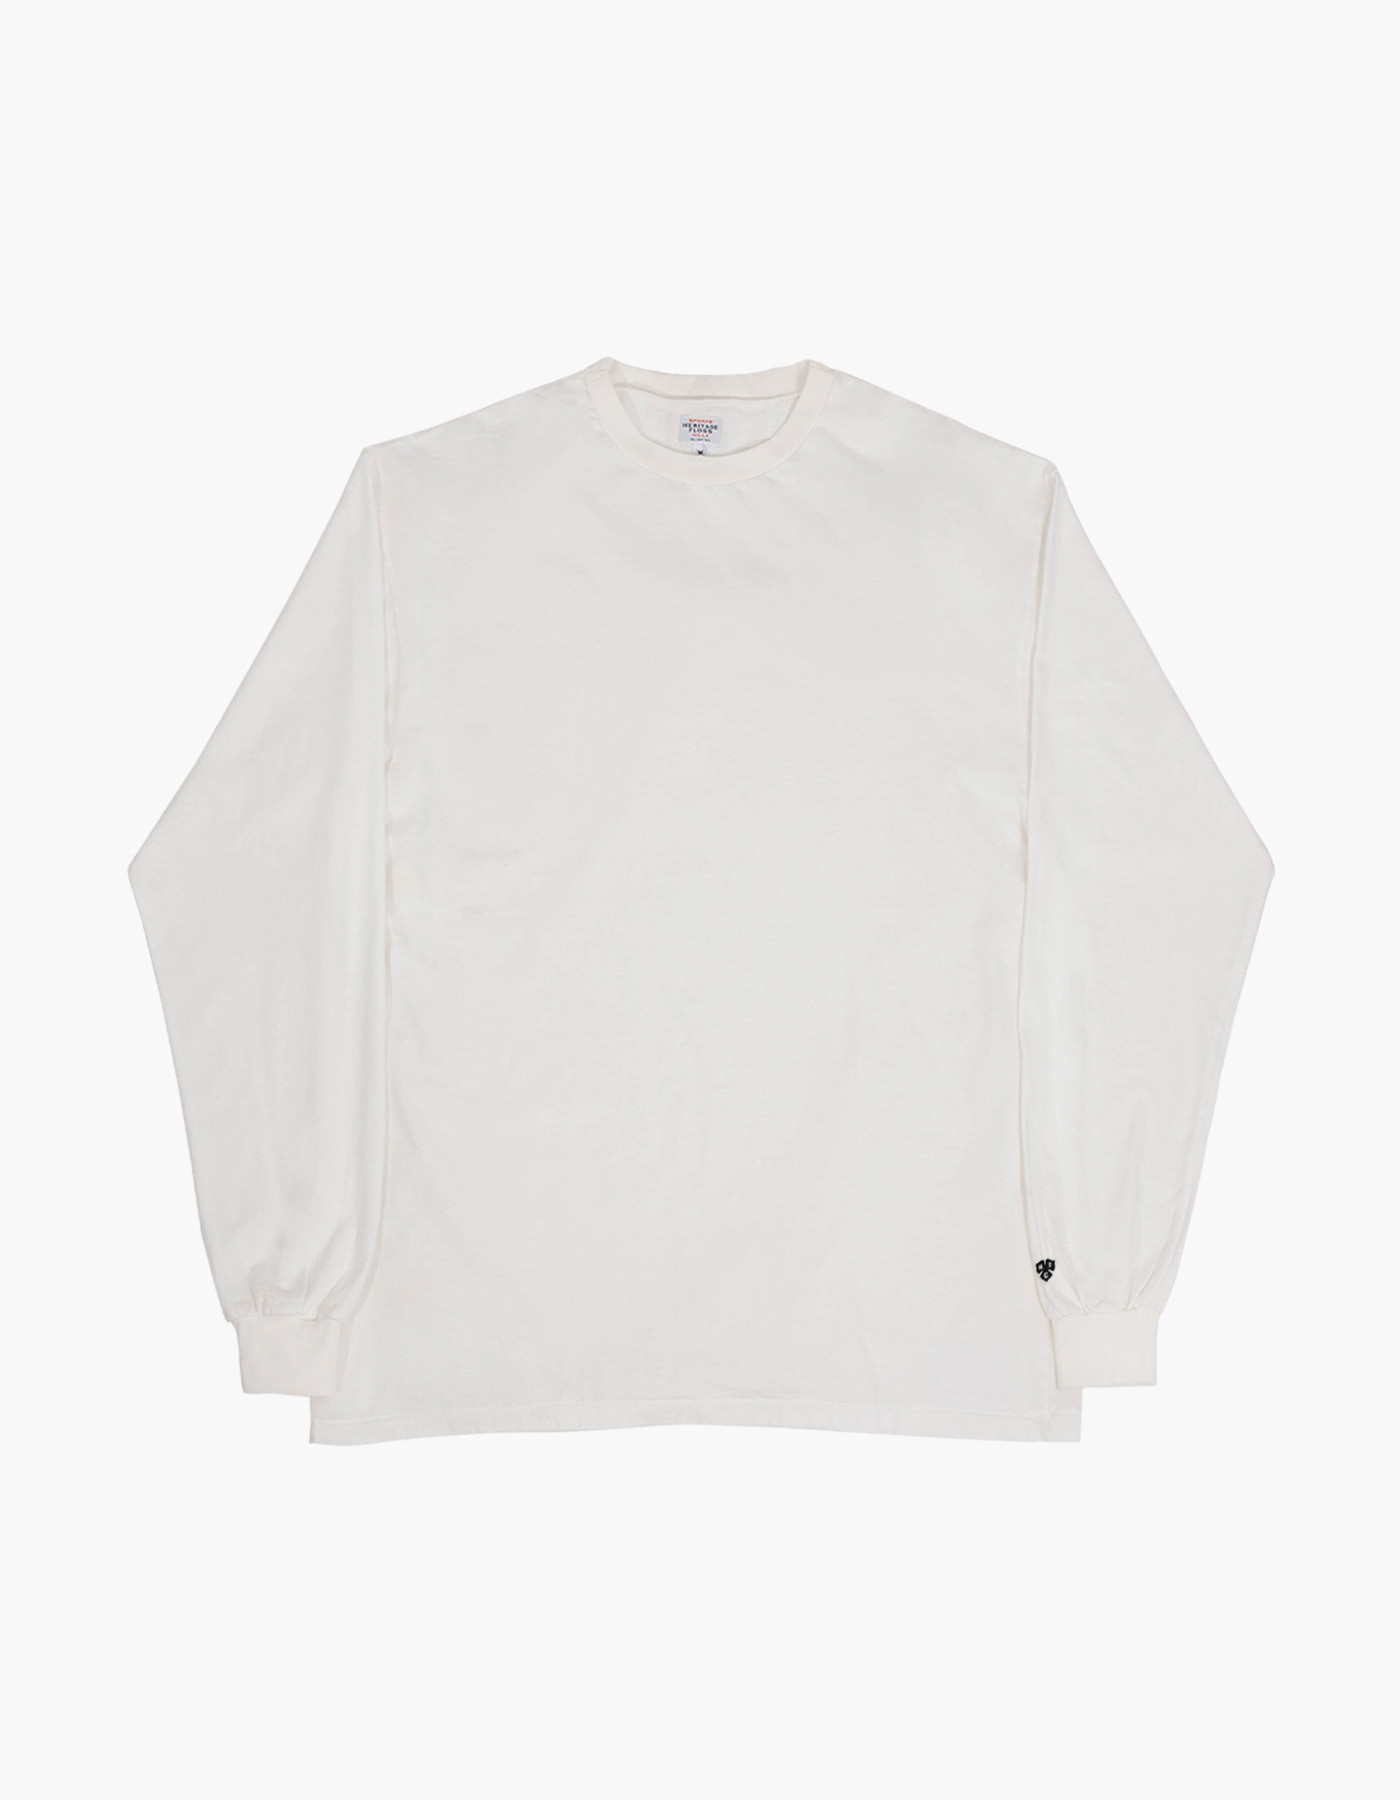 PIGMENT COMPACT YARN LONG SLEEVE / WHITE